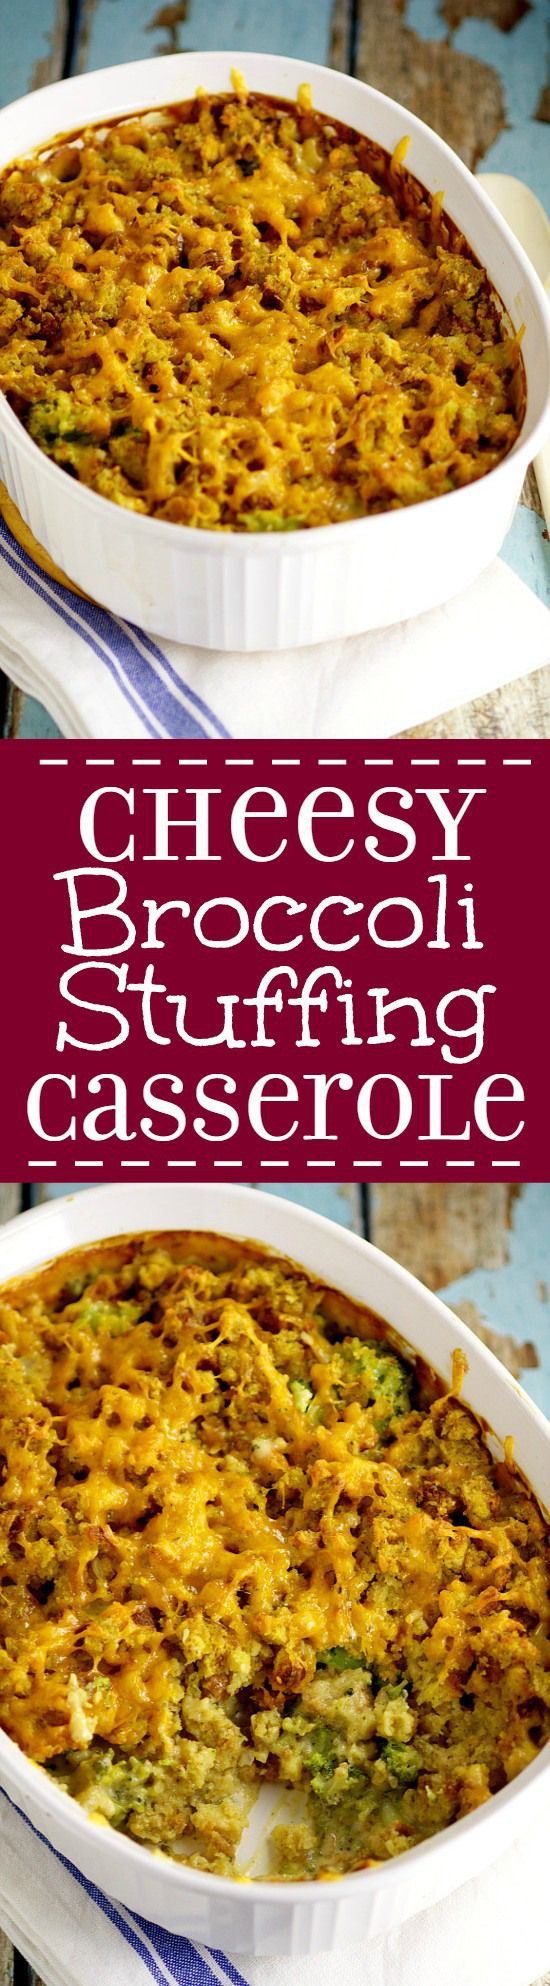 Creamy, cheesy, and cozy, this Cheesy Broccoli Stuffing Casserole with broccoli, stuffing, and LOTS of cheese is the perfect side to finish your meal! It's even great for Thanksgiving and the holidays! The perfect side dish recipe with vegetables.